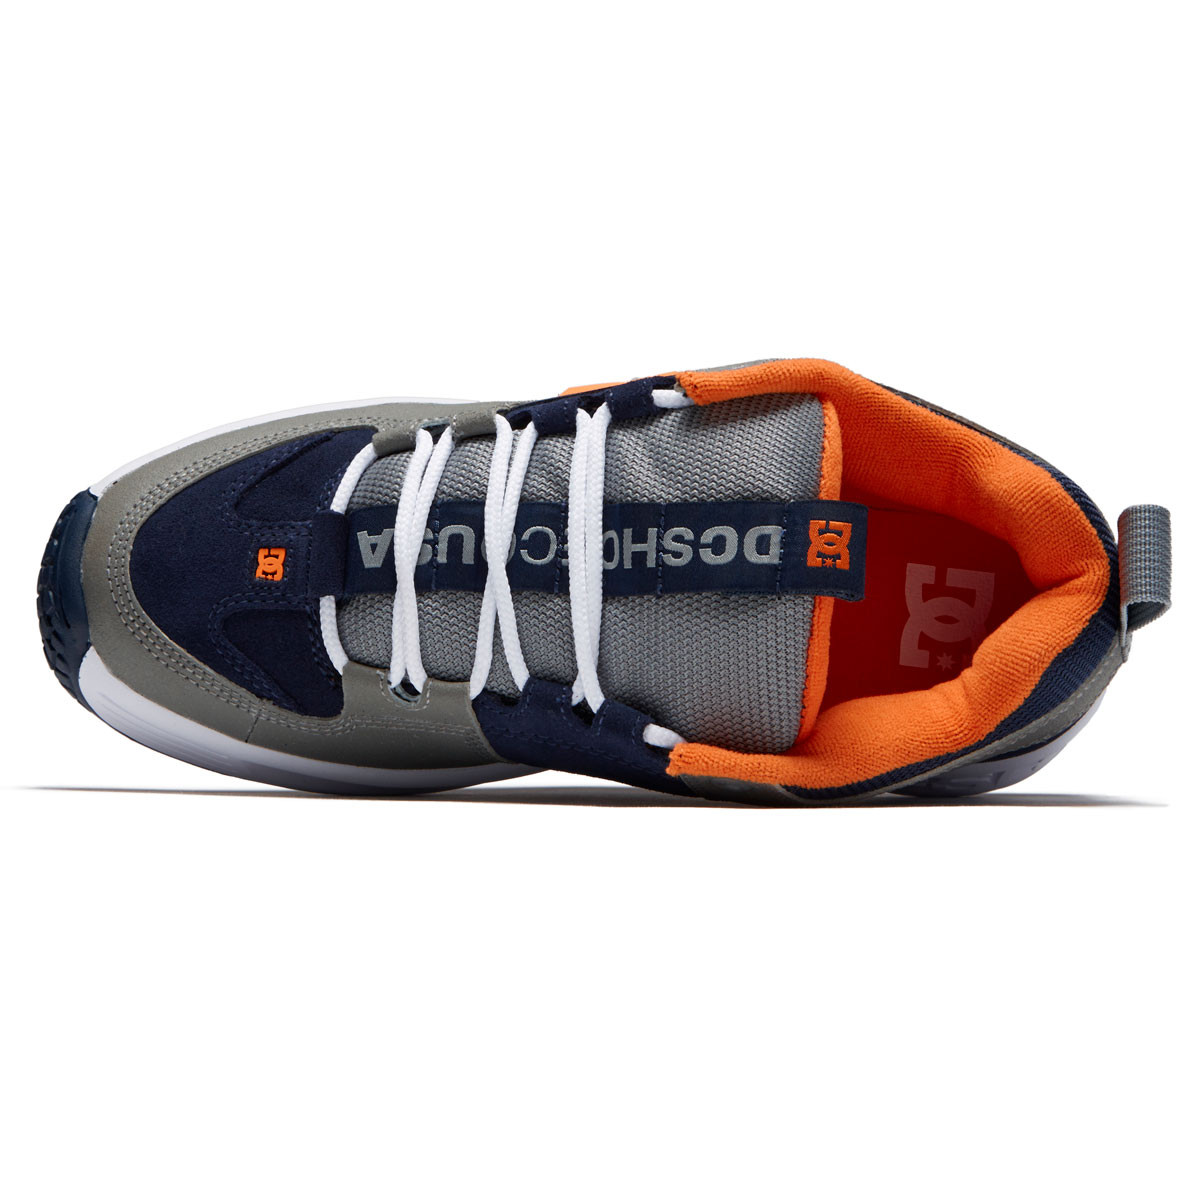 edbb012b62 DC Lynx OG Shoes - Grey Orange - 10.0